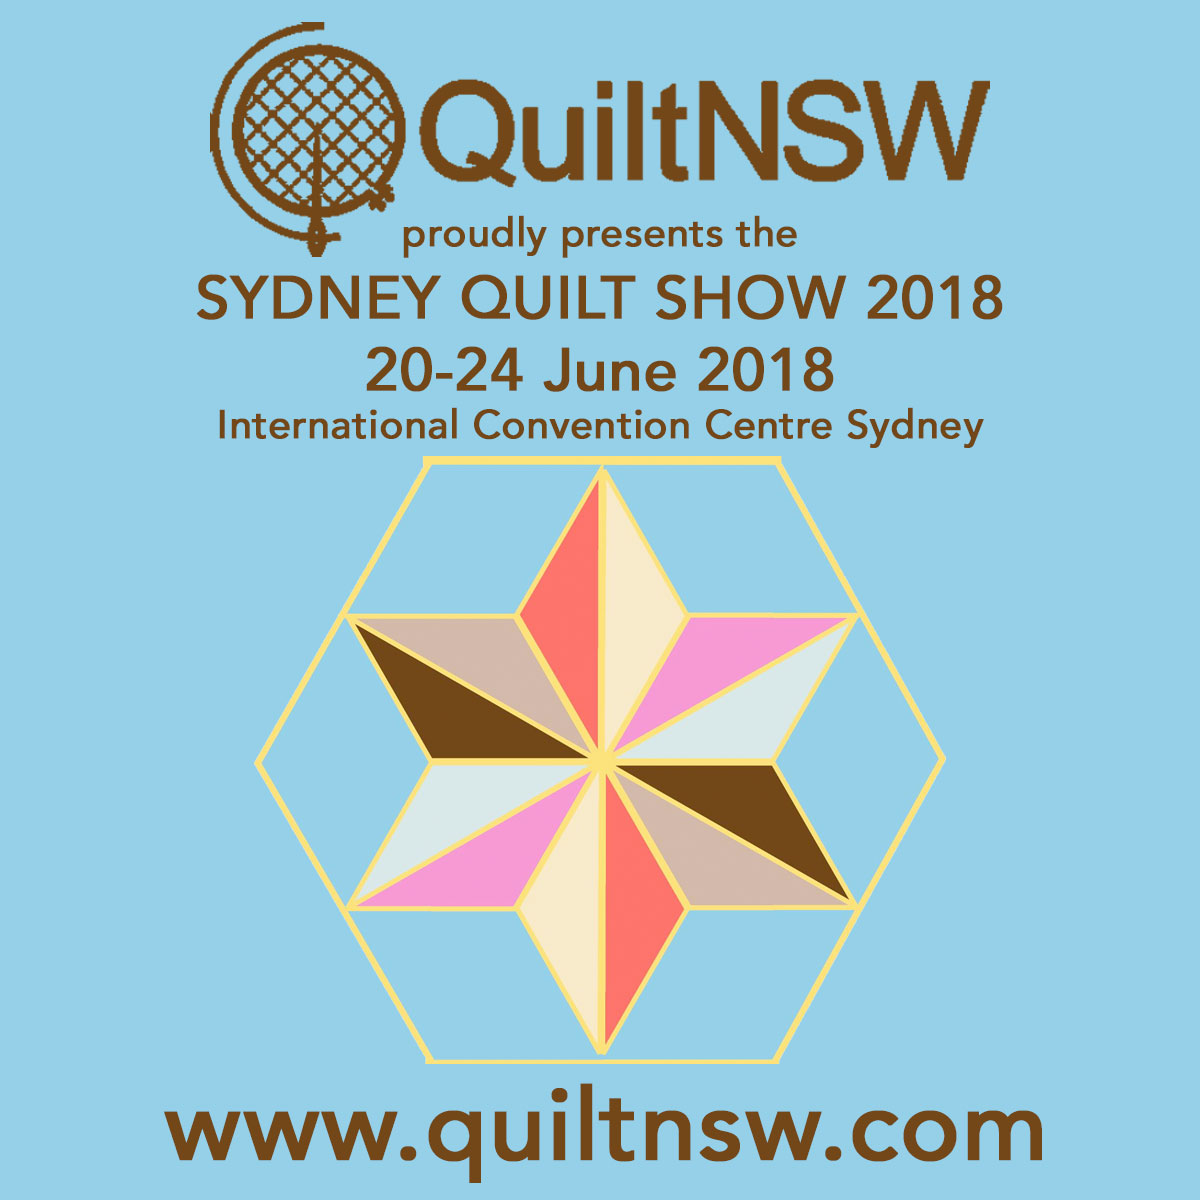 Sydney Quilt Show 20 24 June 2018 Quiltnsw The Quilters